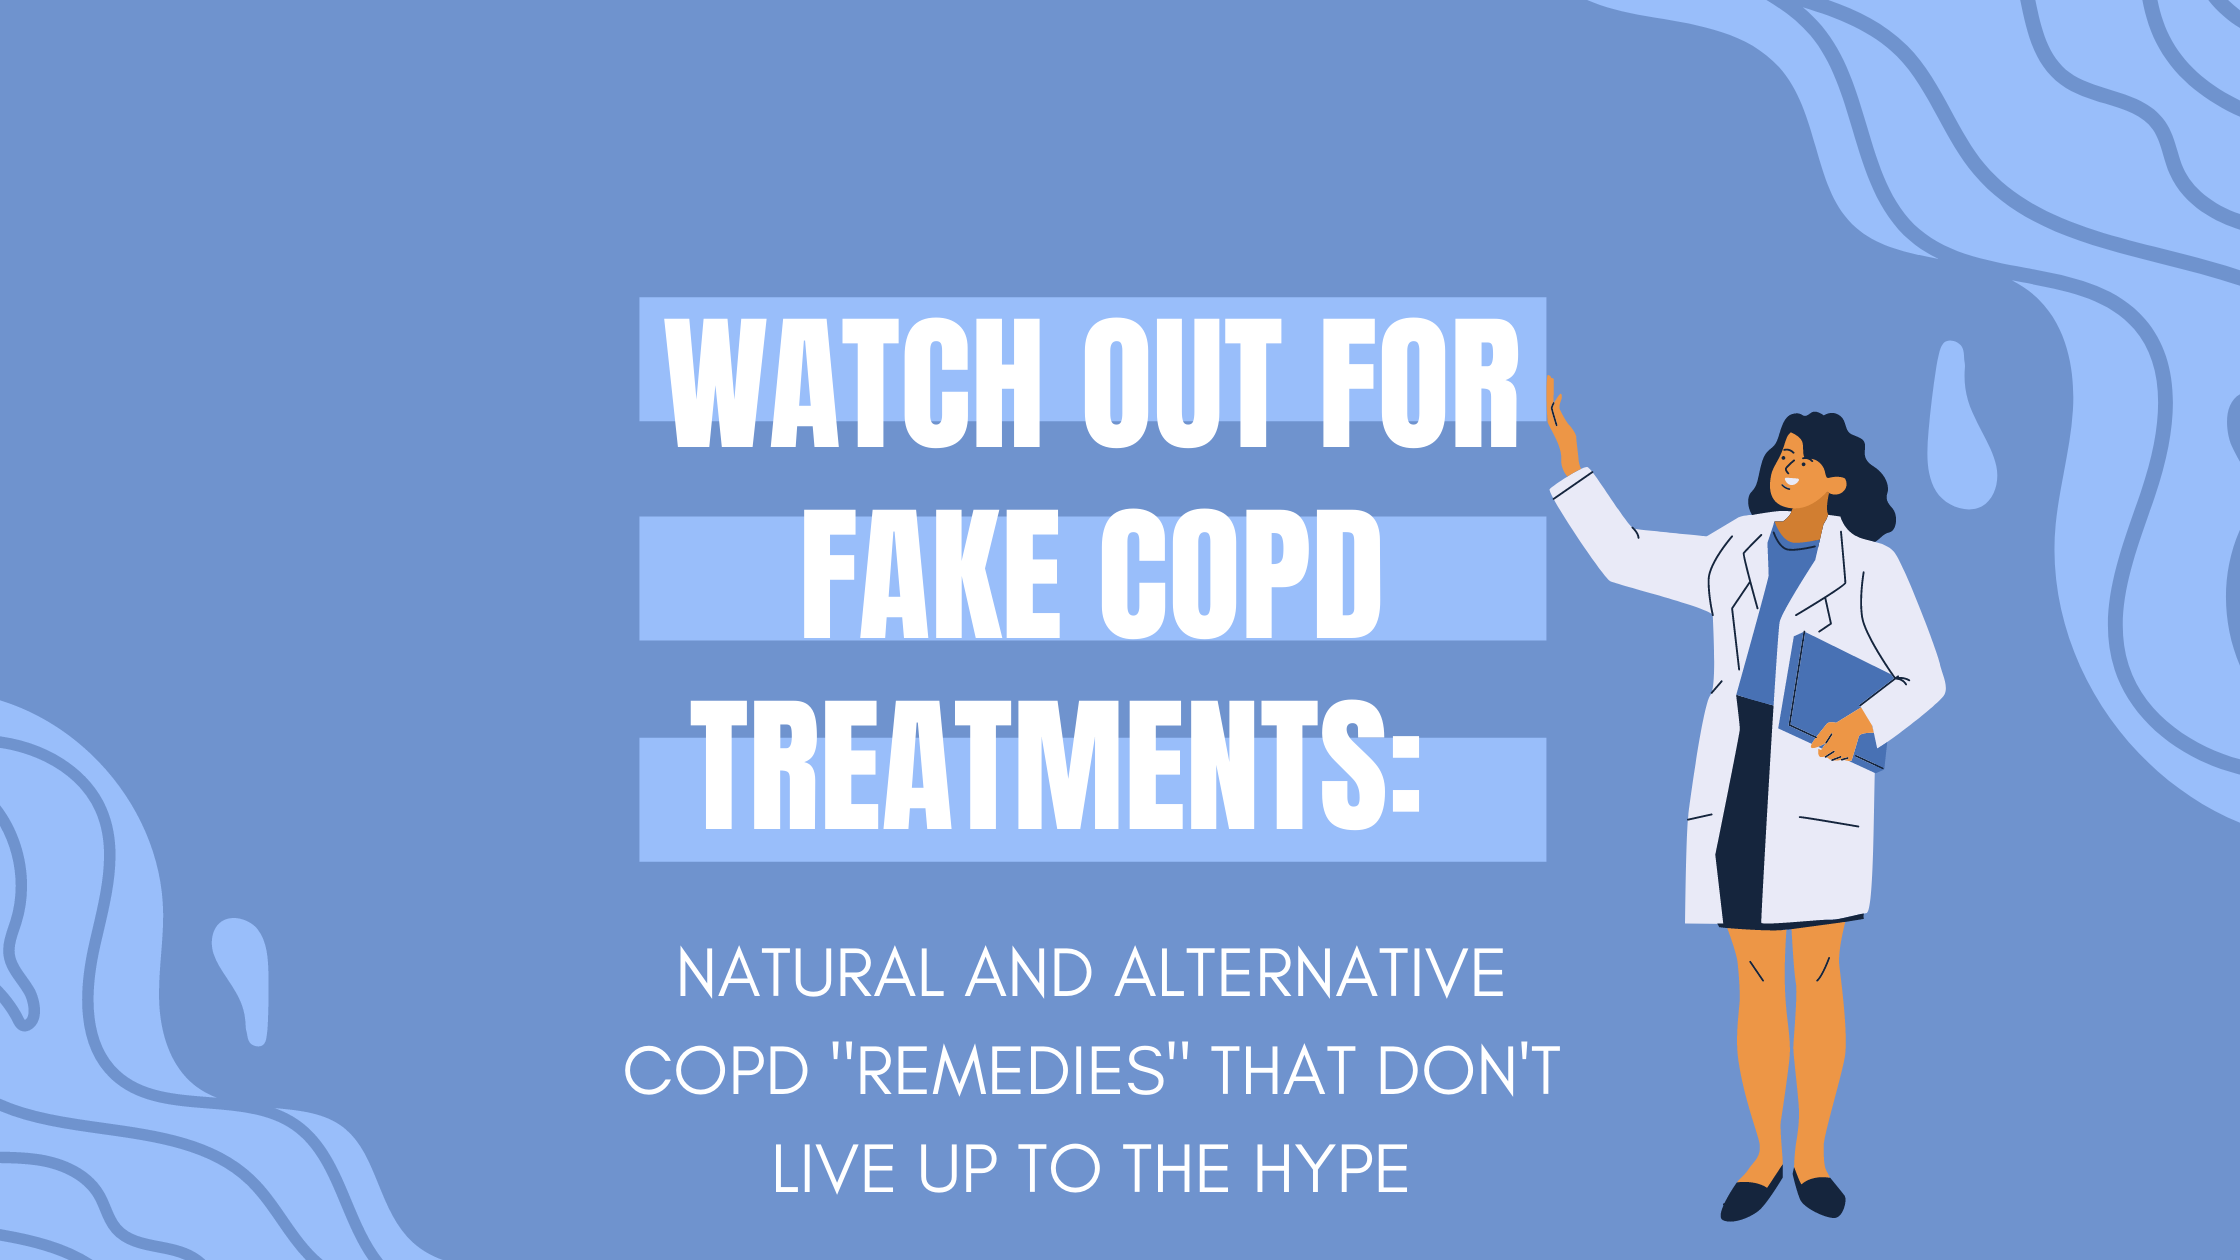 Watch Out for Fake COPD Treatments 9 Natural and Alternative COPD Remedies That Dont Live Up to the Hype